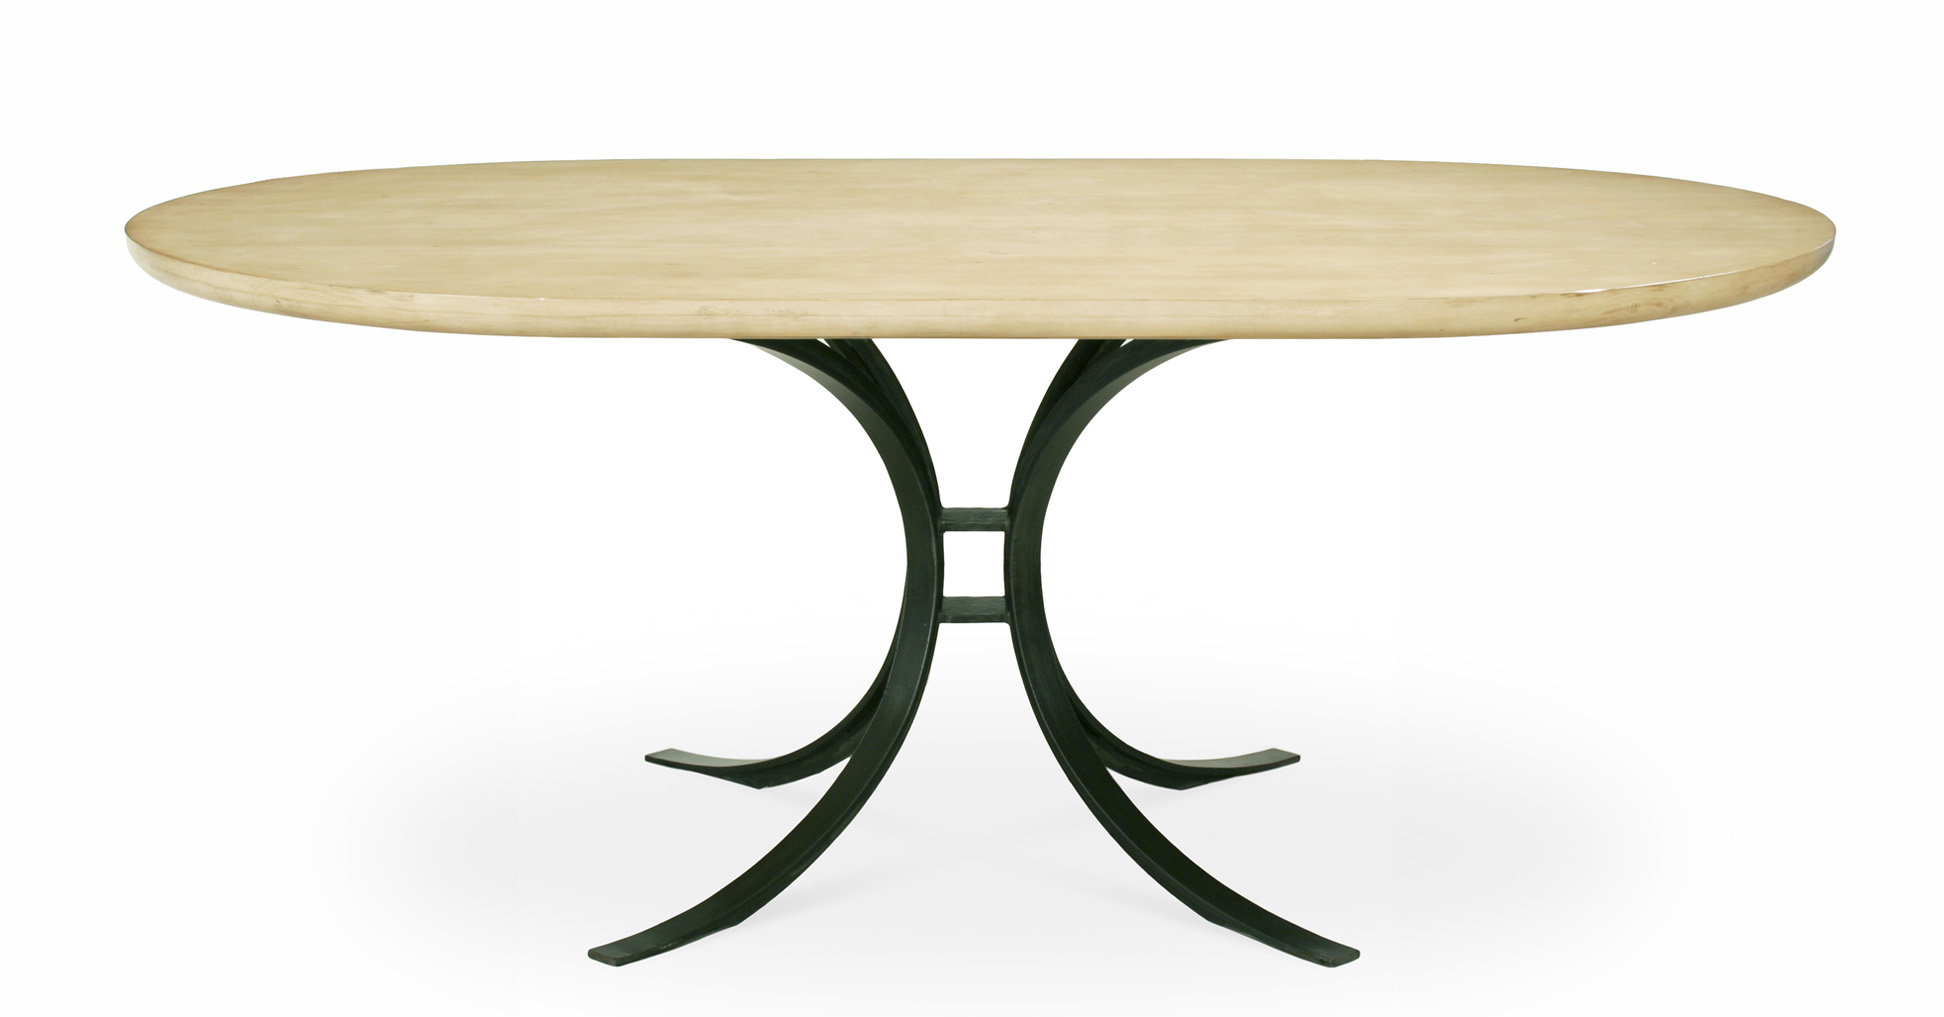 Quincy Oval Dining Table For Sale Cottage amp Bungalow